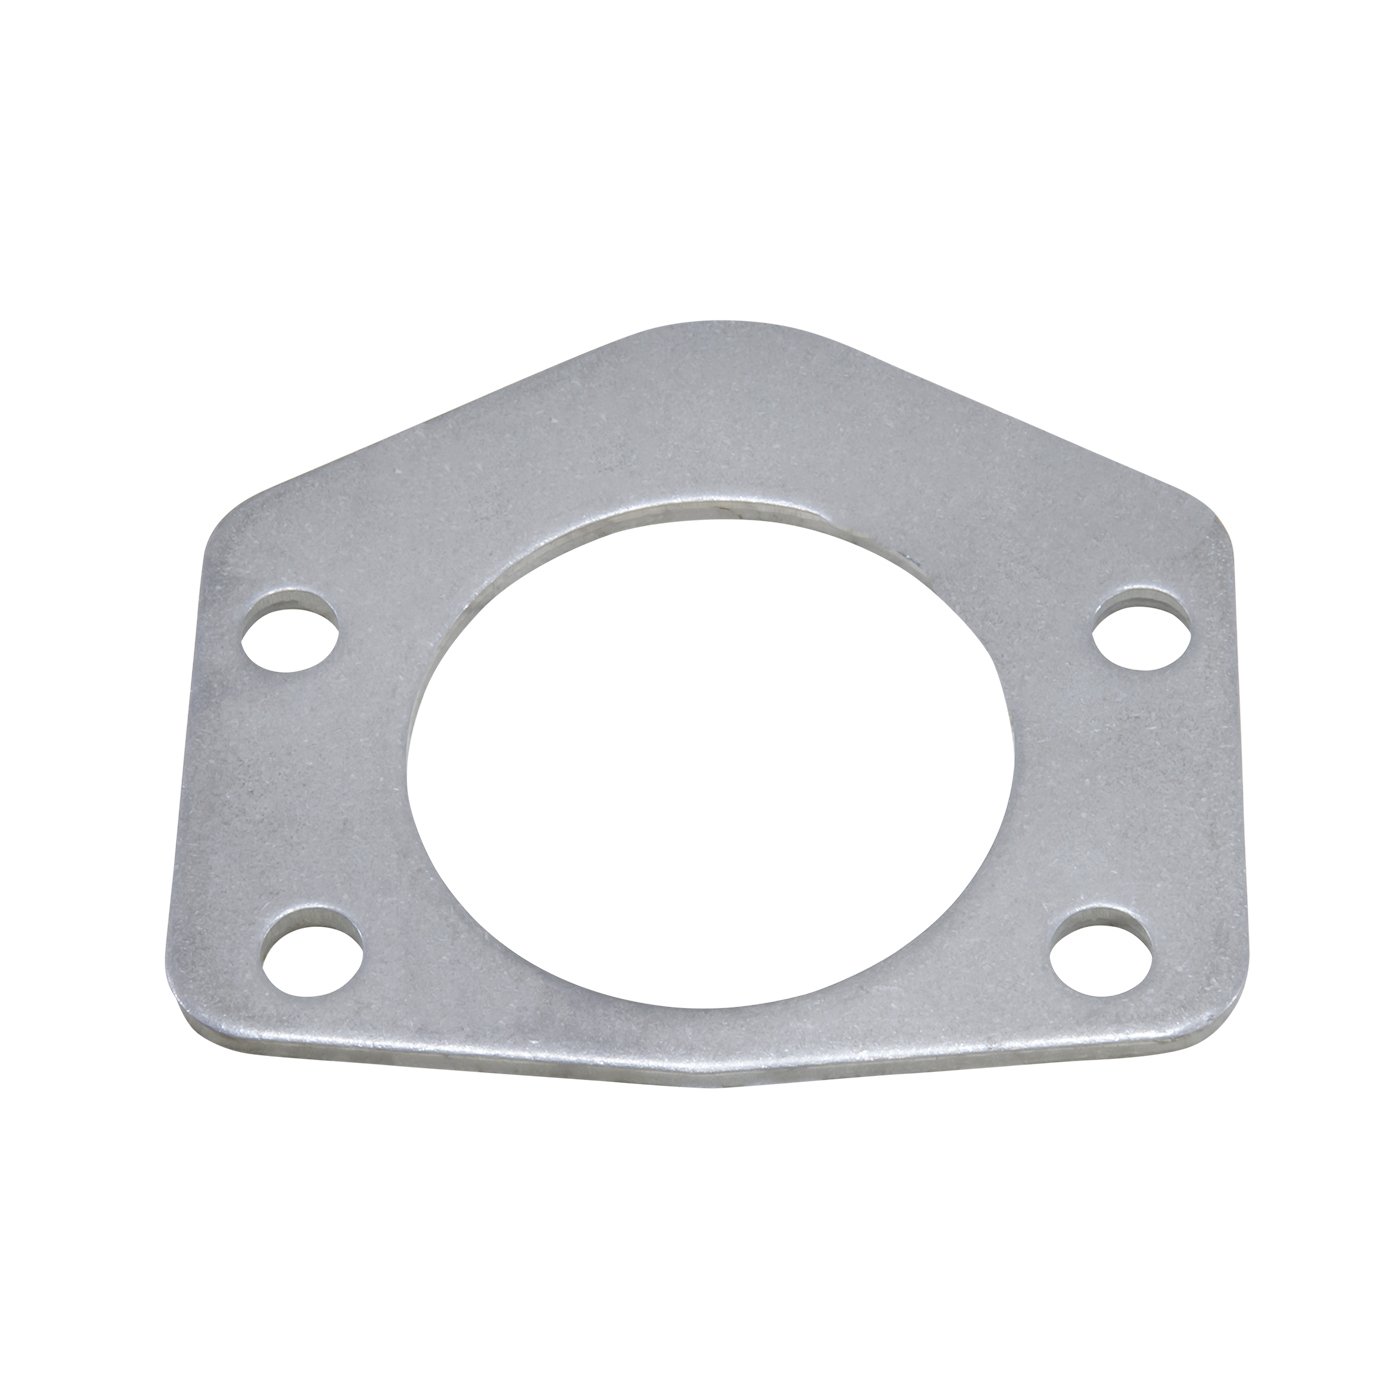 YSPRET-010 - Axle bearing retainer plate for Dana 44 TJ rear